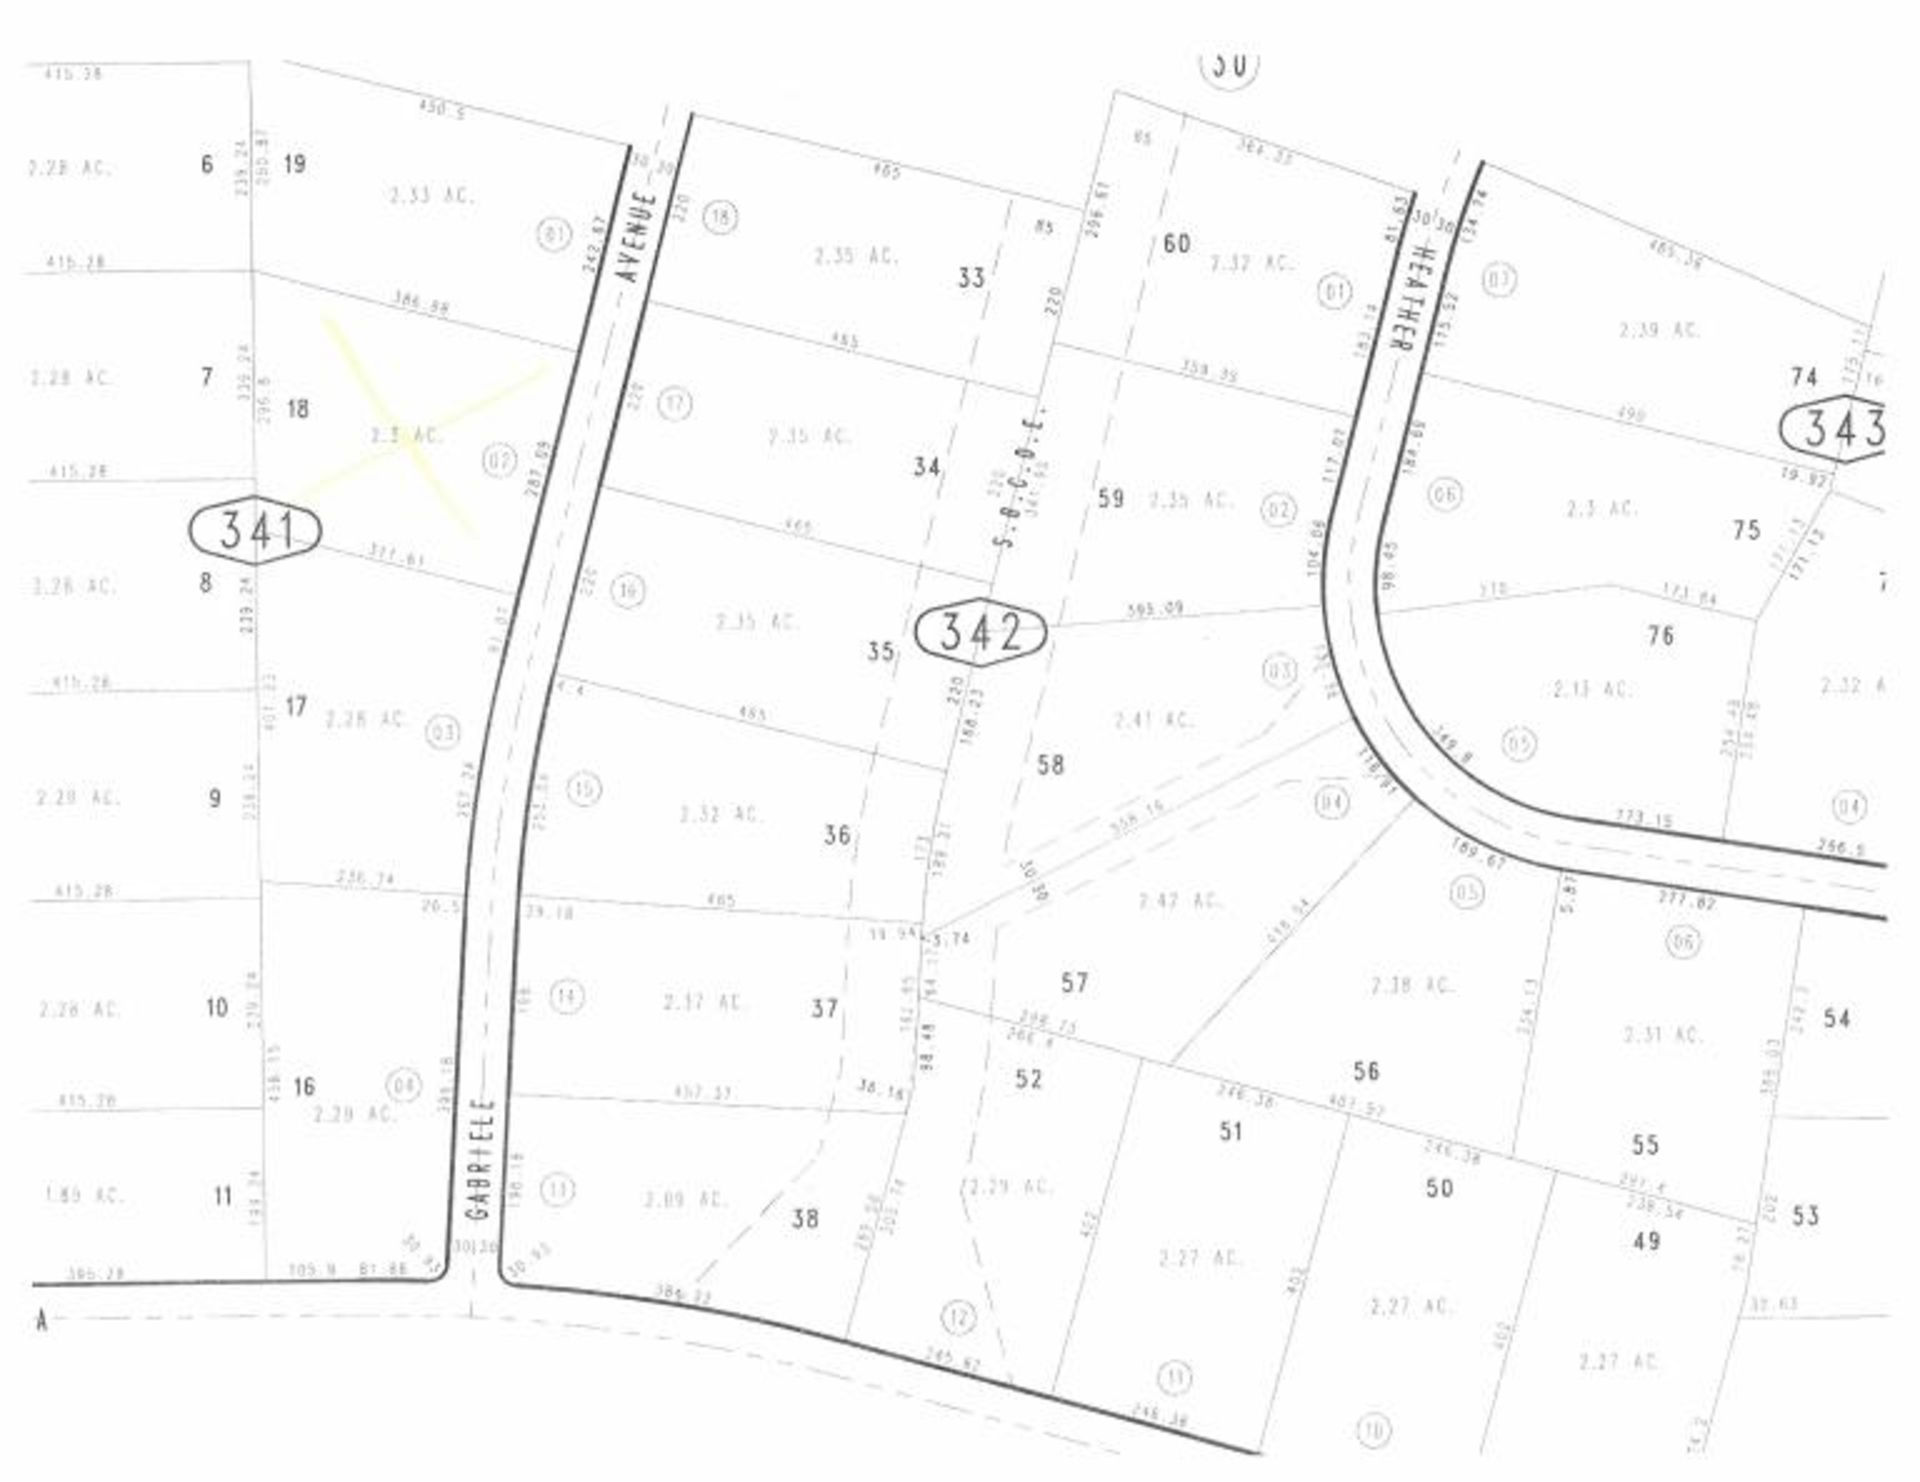 Lot 499 - 2.3 Acre Vacant Parcel Near the City of Hinkley,